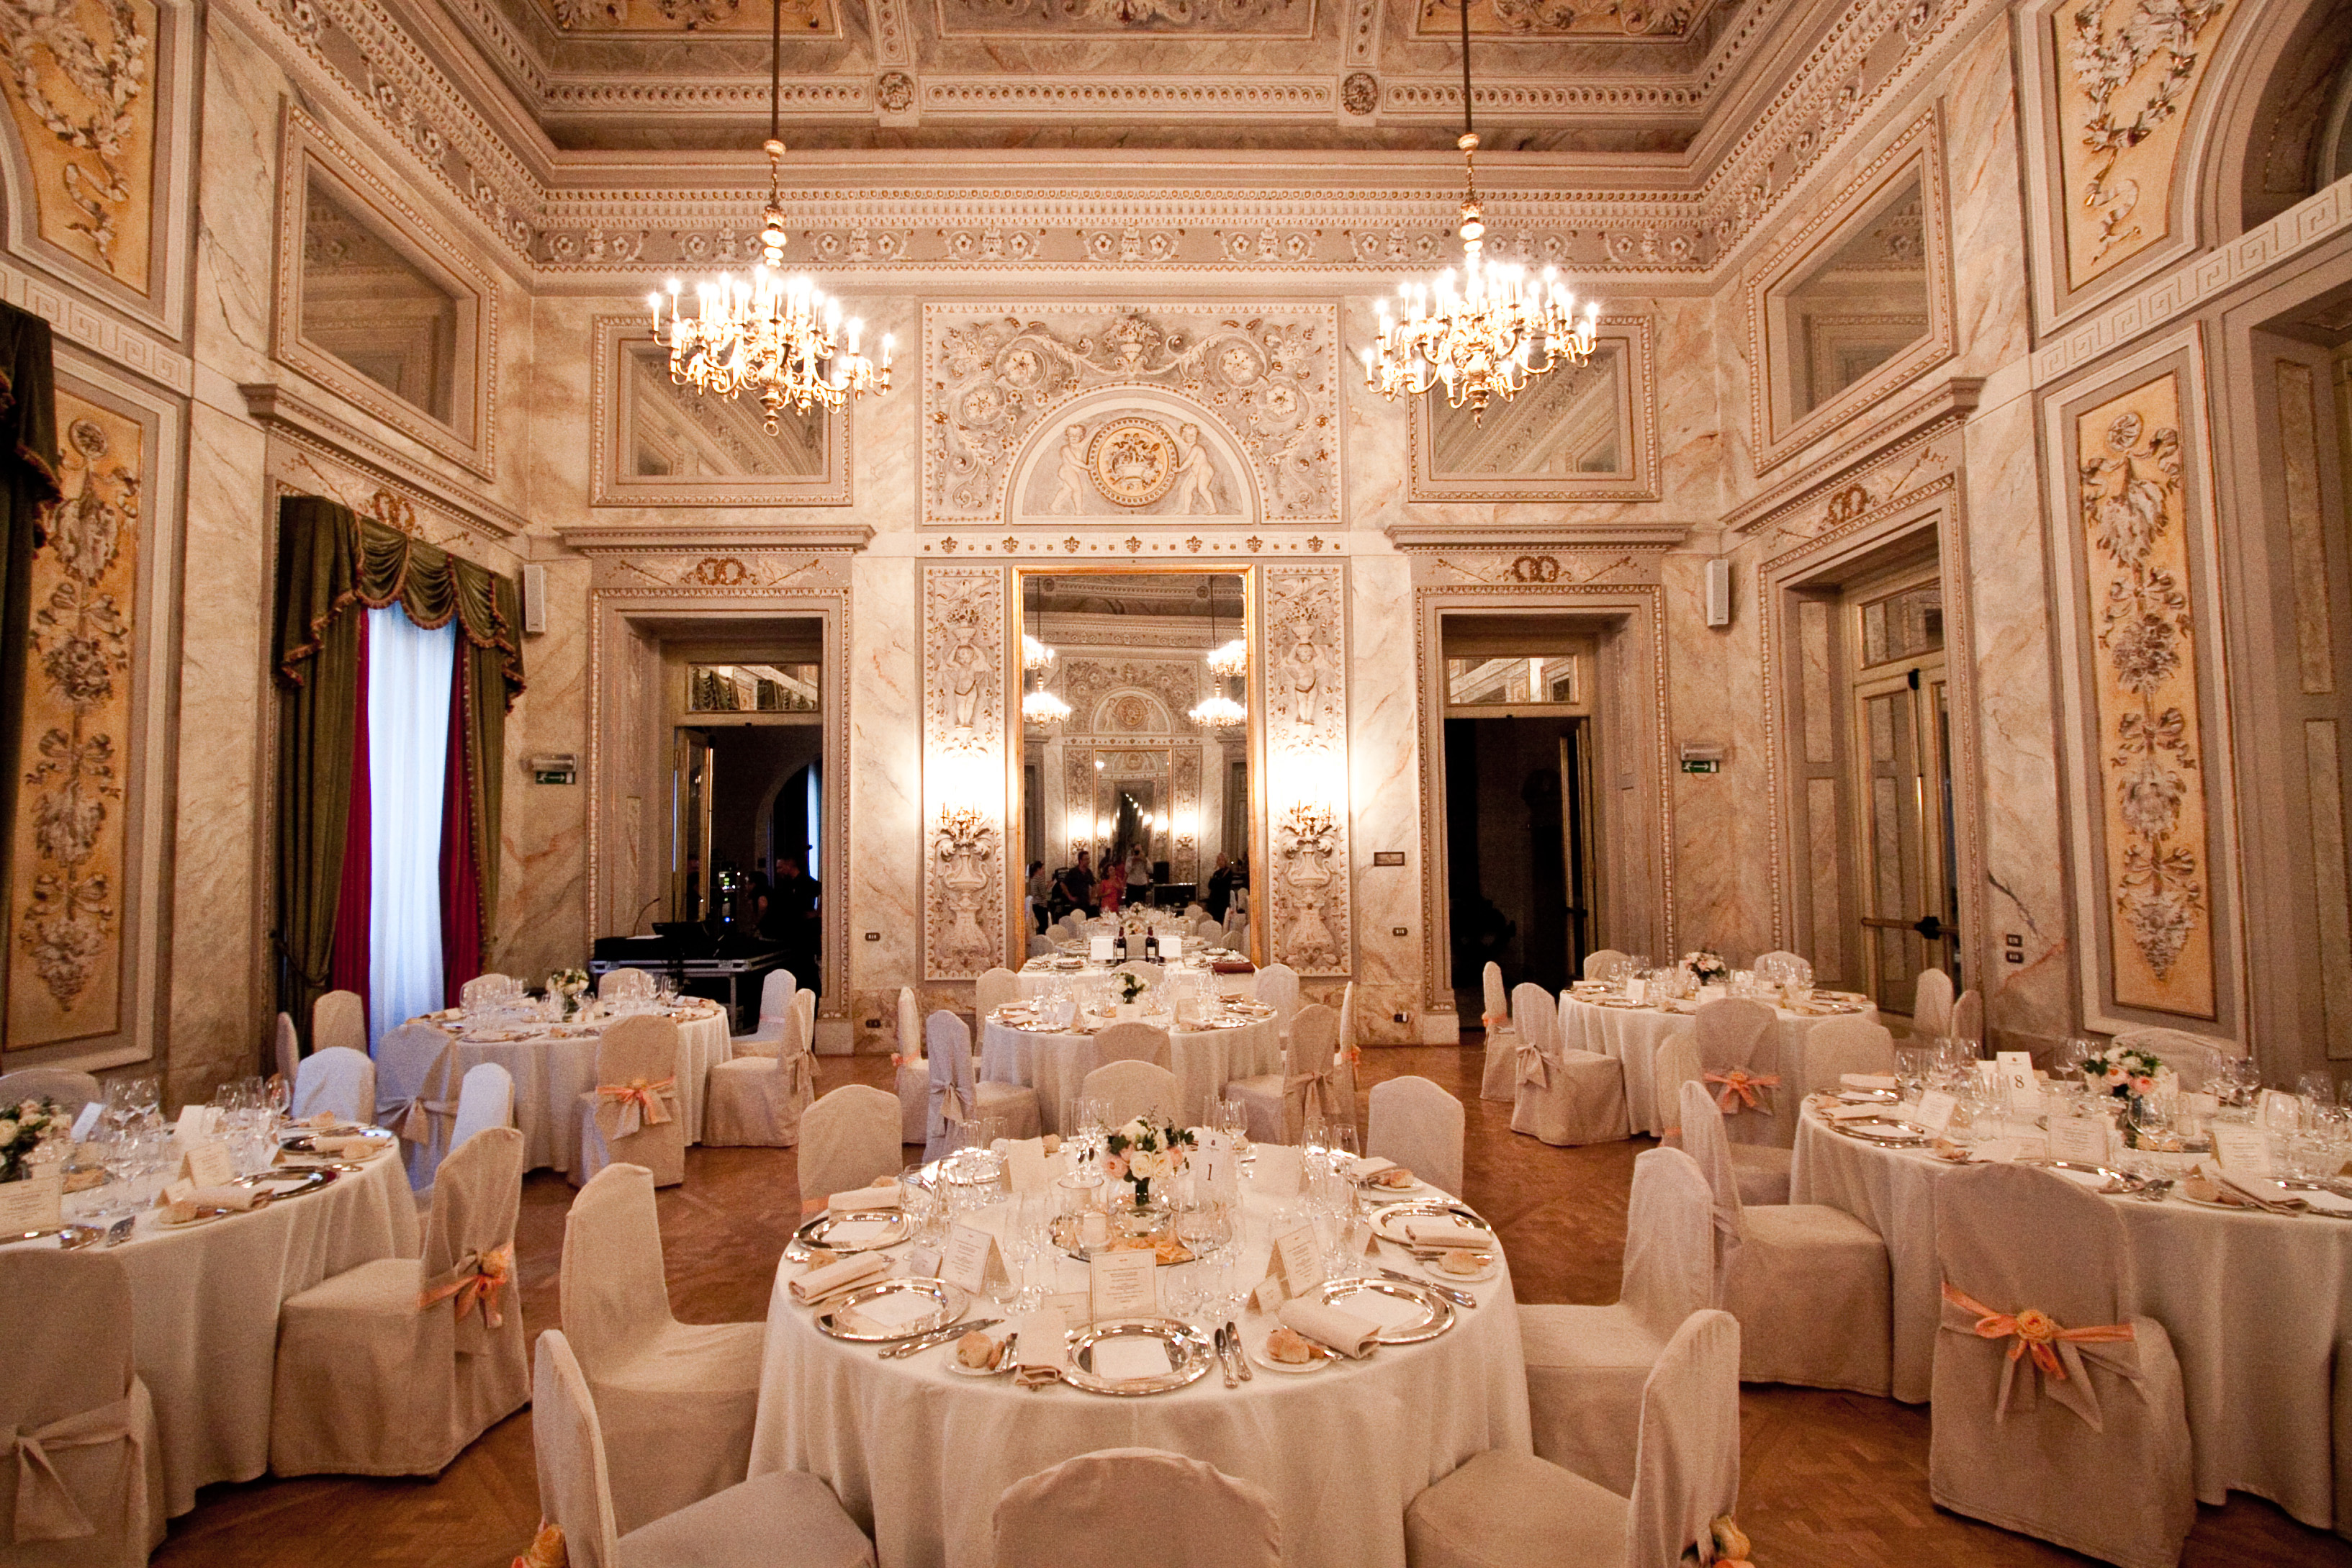 florence-wedding-venues-small-styles-24-on-venue-design-ideas